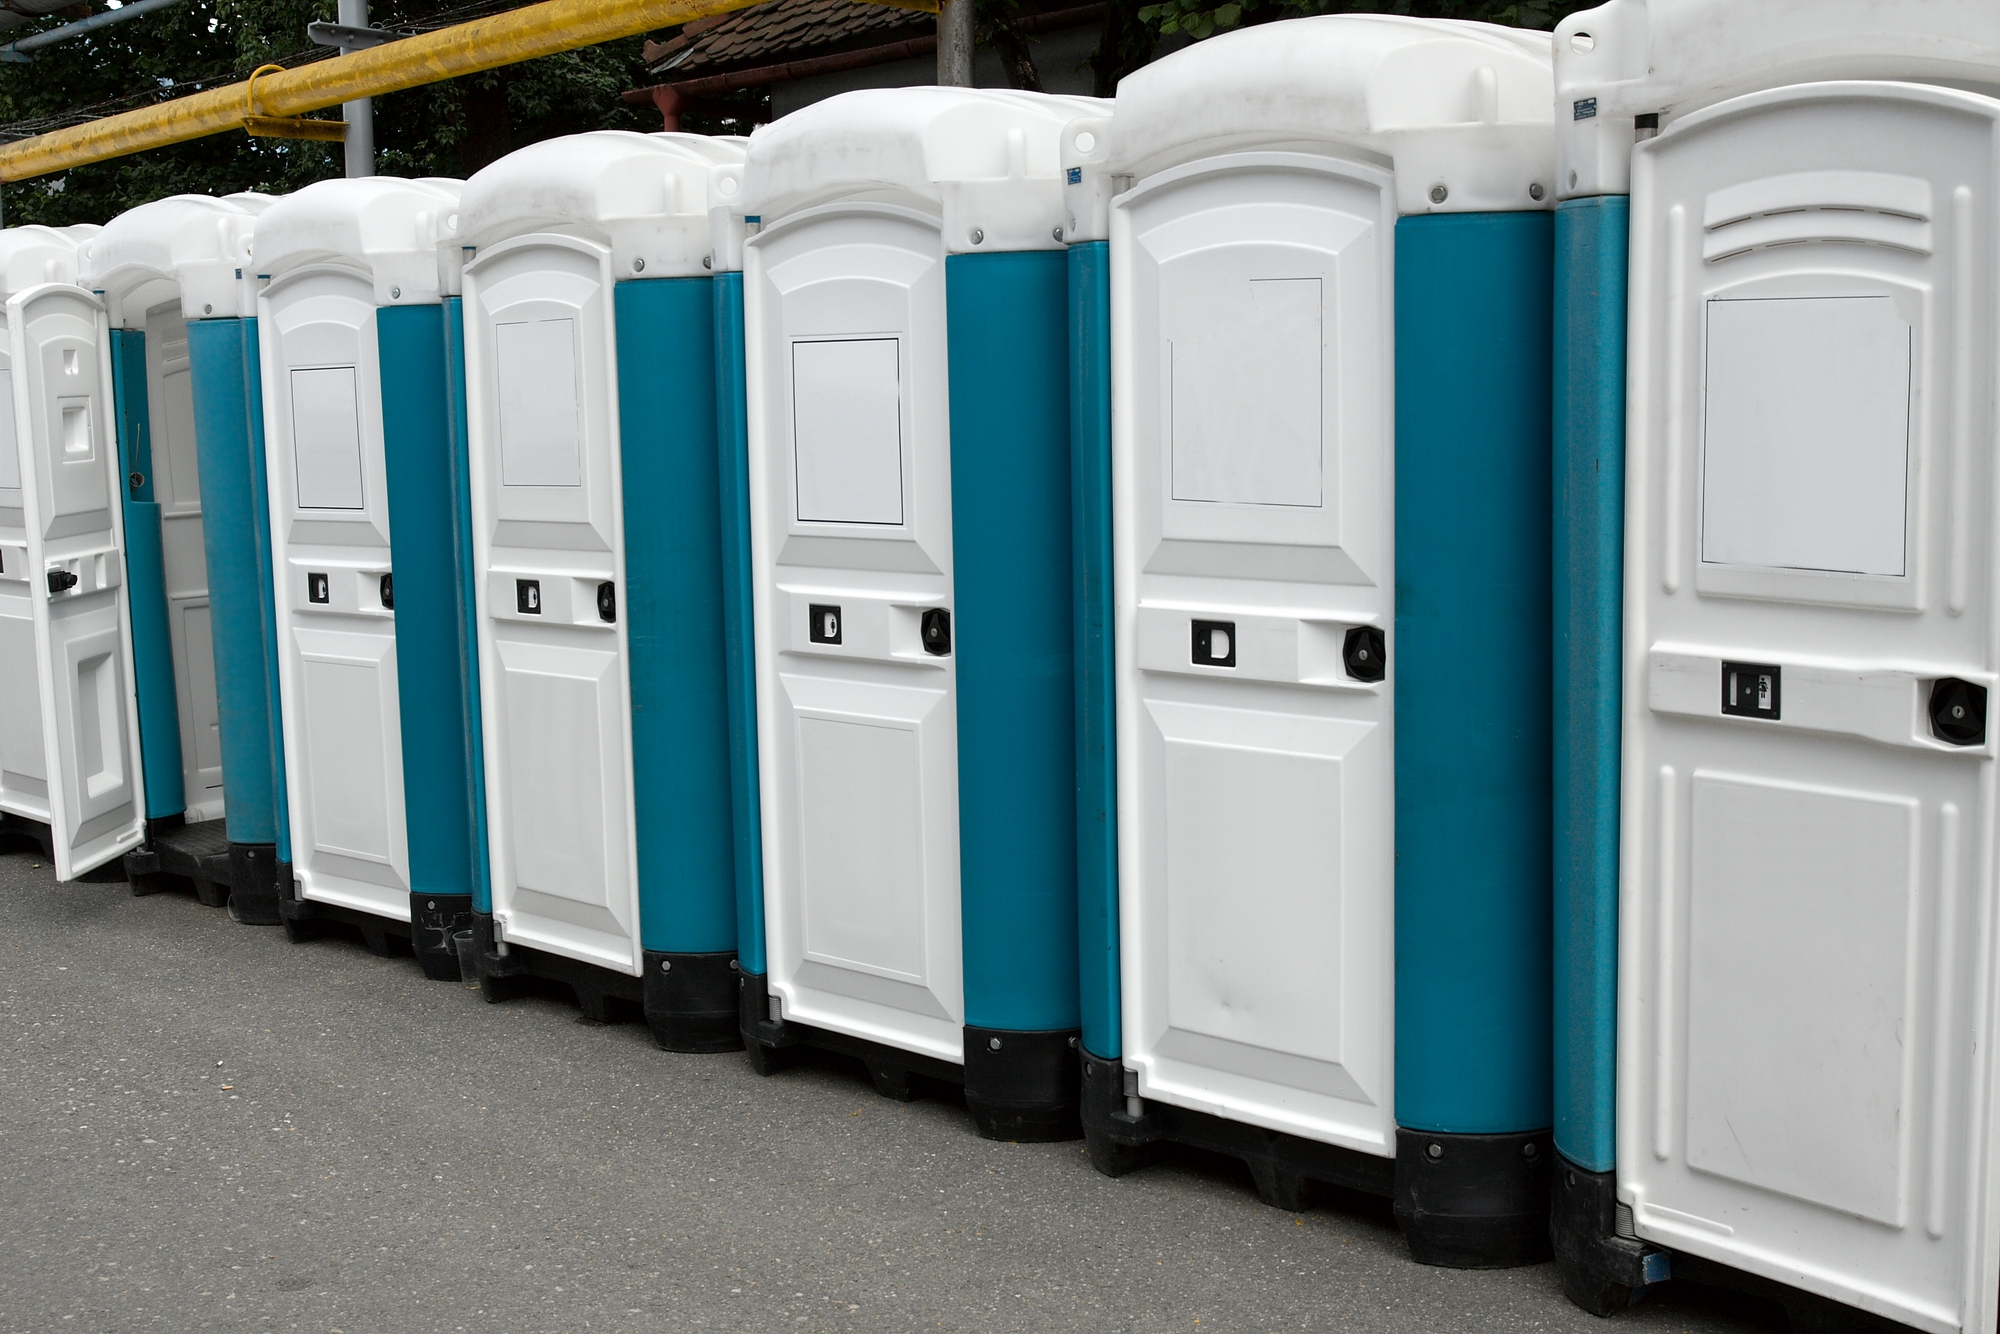 The Blue Liquid in Porta Potties: What Is It? - Johnny On ...